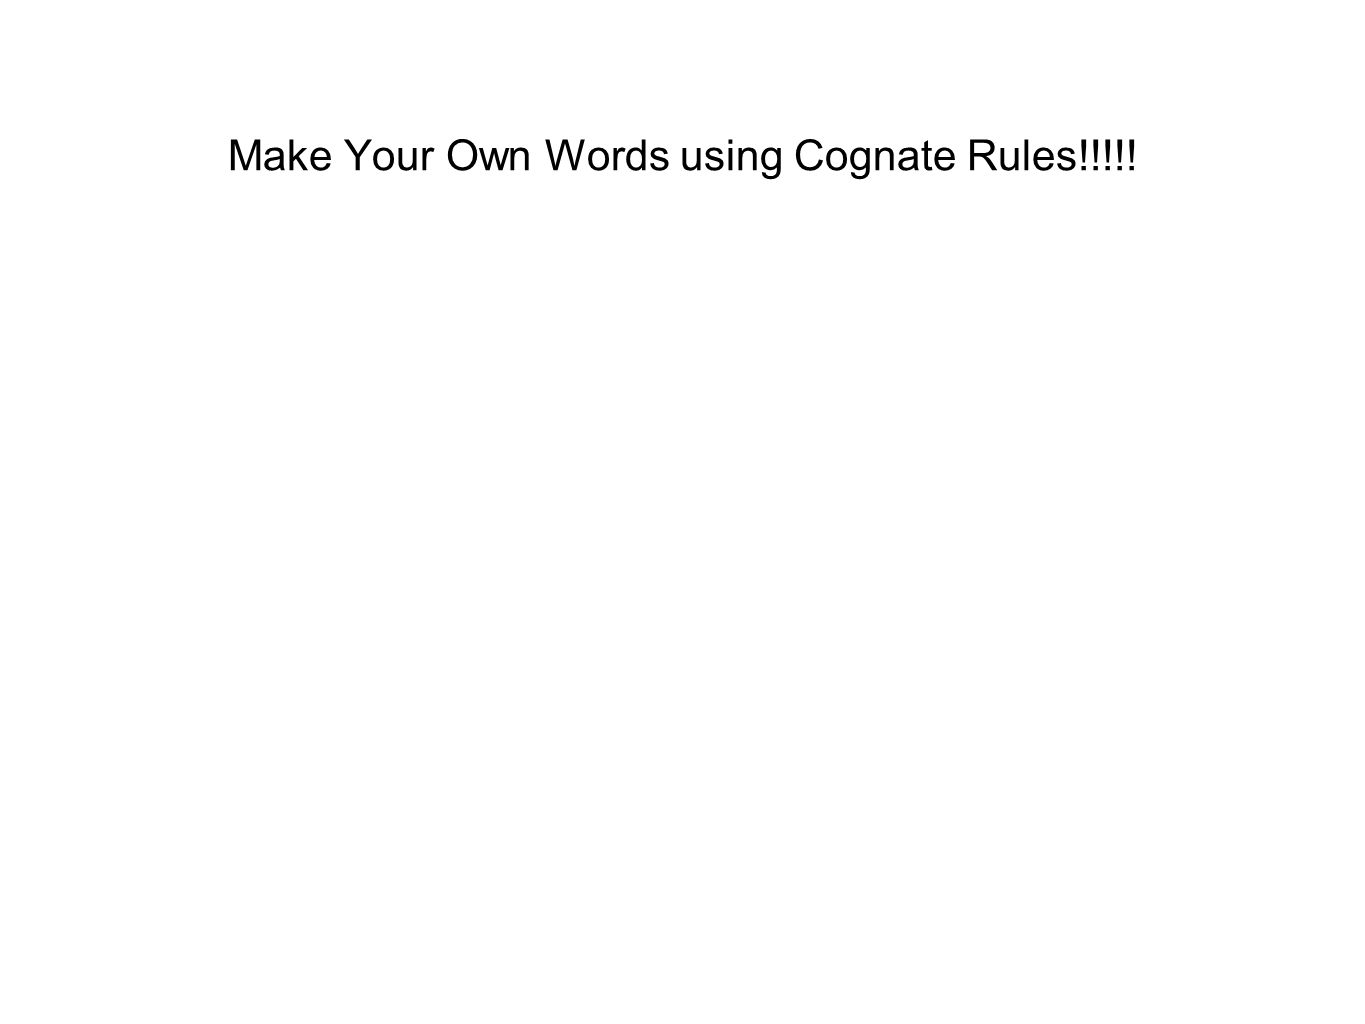 Make Your Own Words using Cognate Rules!!!!!